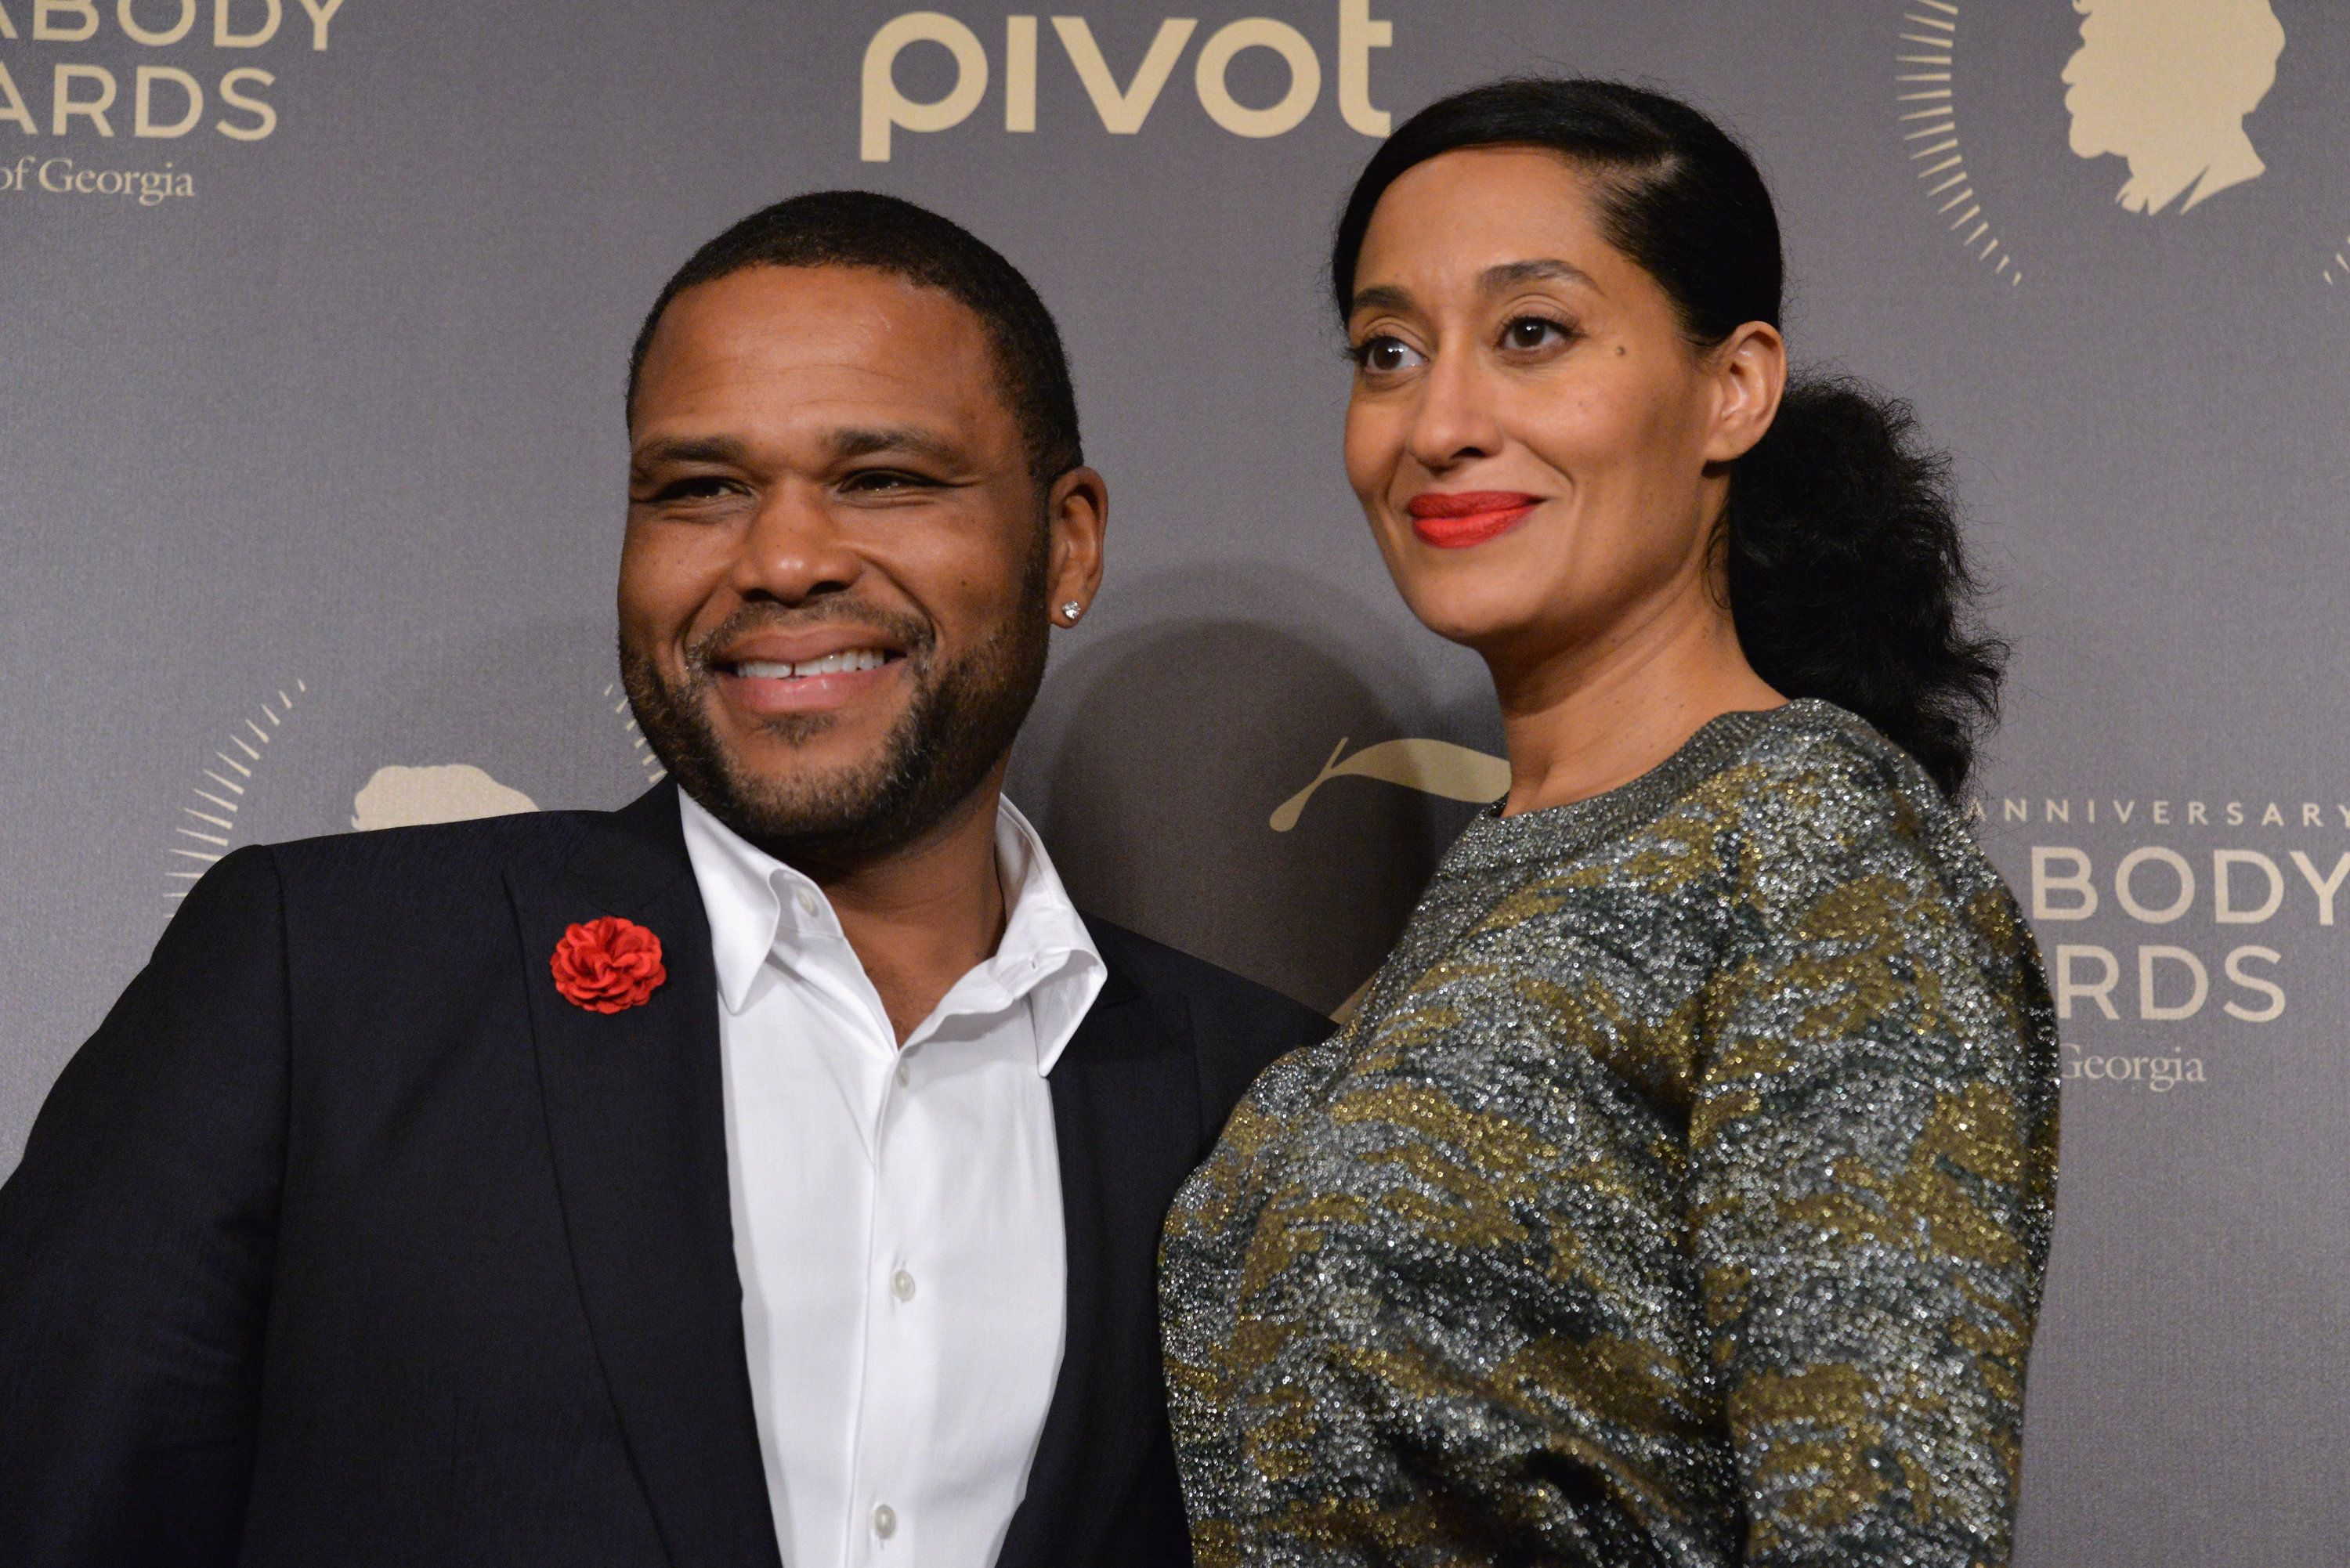 NEW YORK, NY - MAY 21:  Actors Anthony Anderson and Tracee Ellis Ross pose with award during The 75th Annual Peabody Awards Ceremony at Cipriani Wall Street on May 21, 2016 in New York City.  (Photo by Gary Gershoff/Getty Images for Peabody)